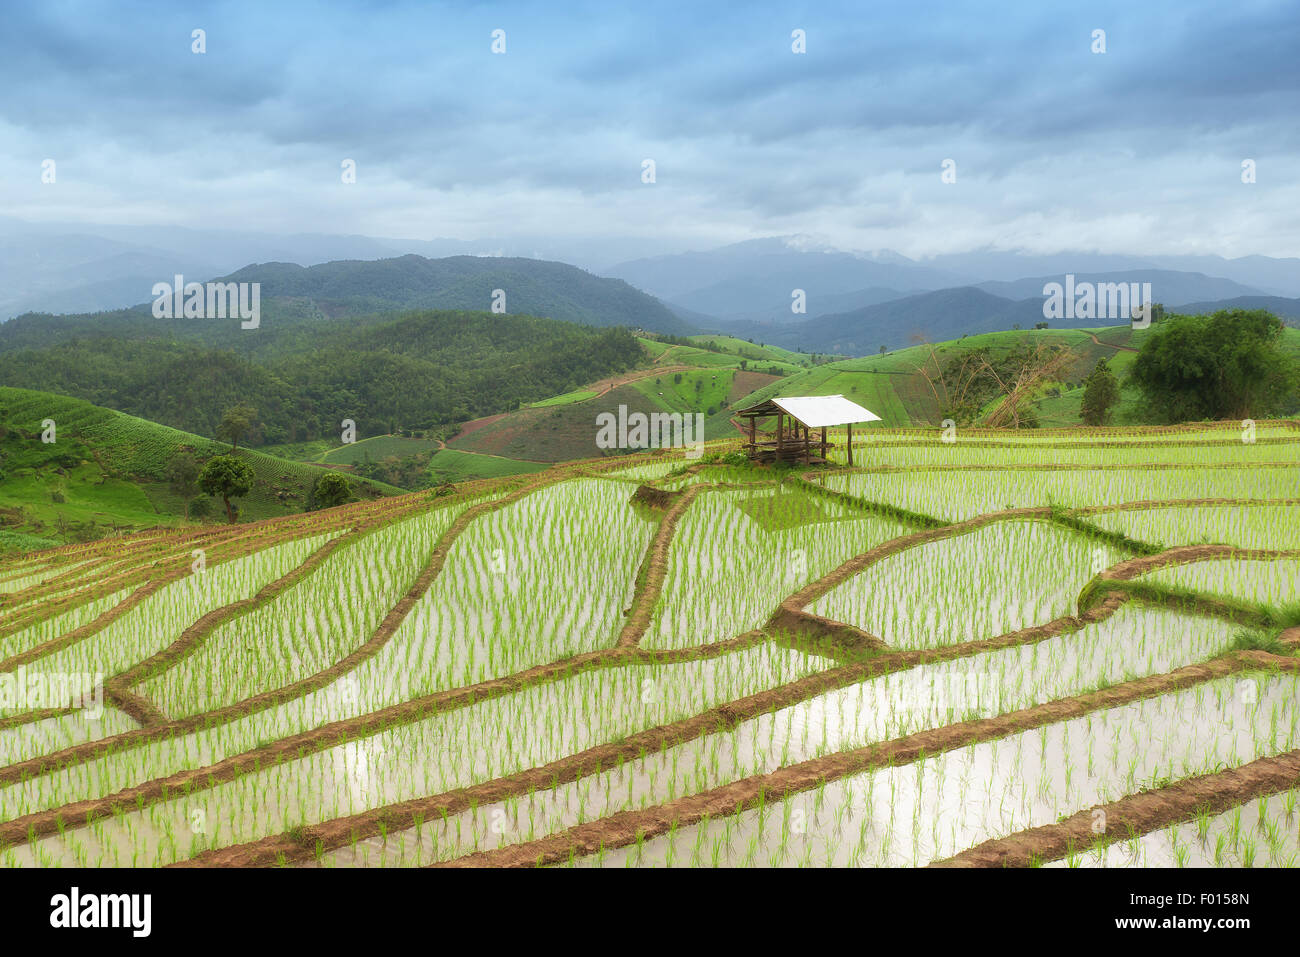 Green Terraced Rice Field in Pa Pong Pieng ,Chiang Mai, Thailand - Stock Image